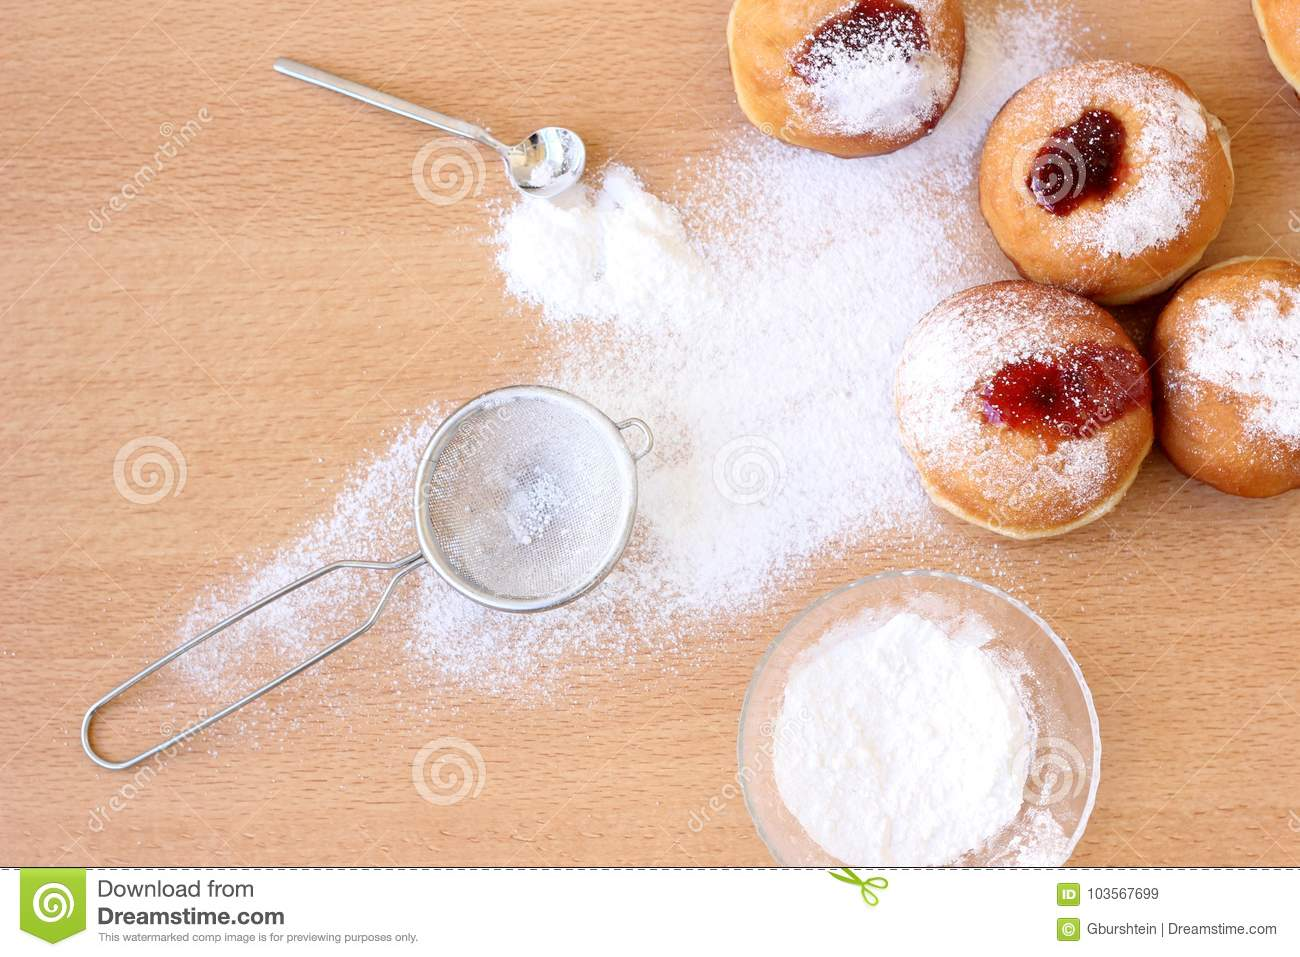 Messy Hanukkah table with sugar powder and doughnuts